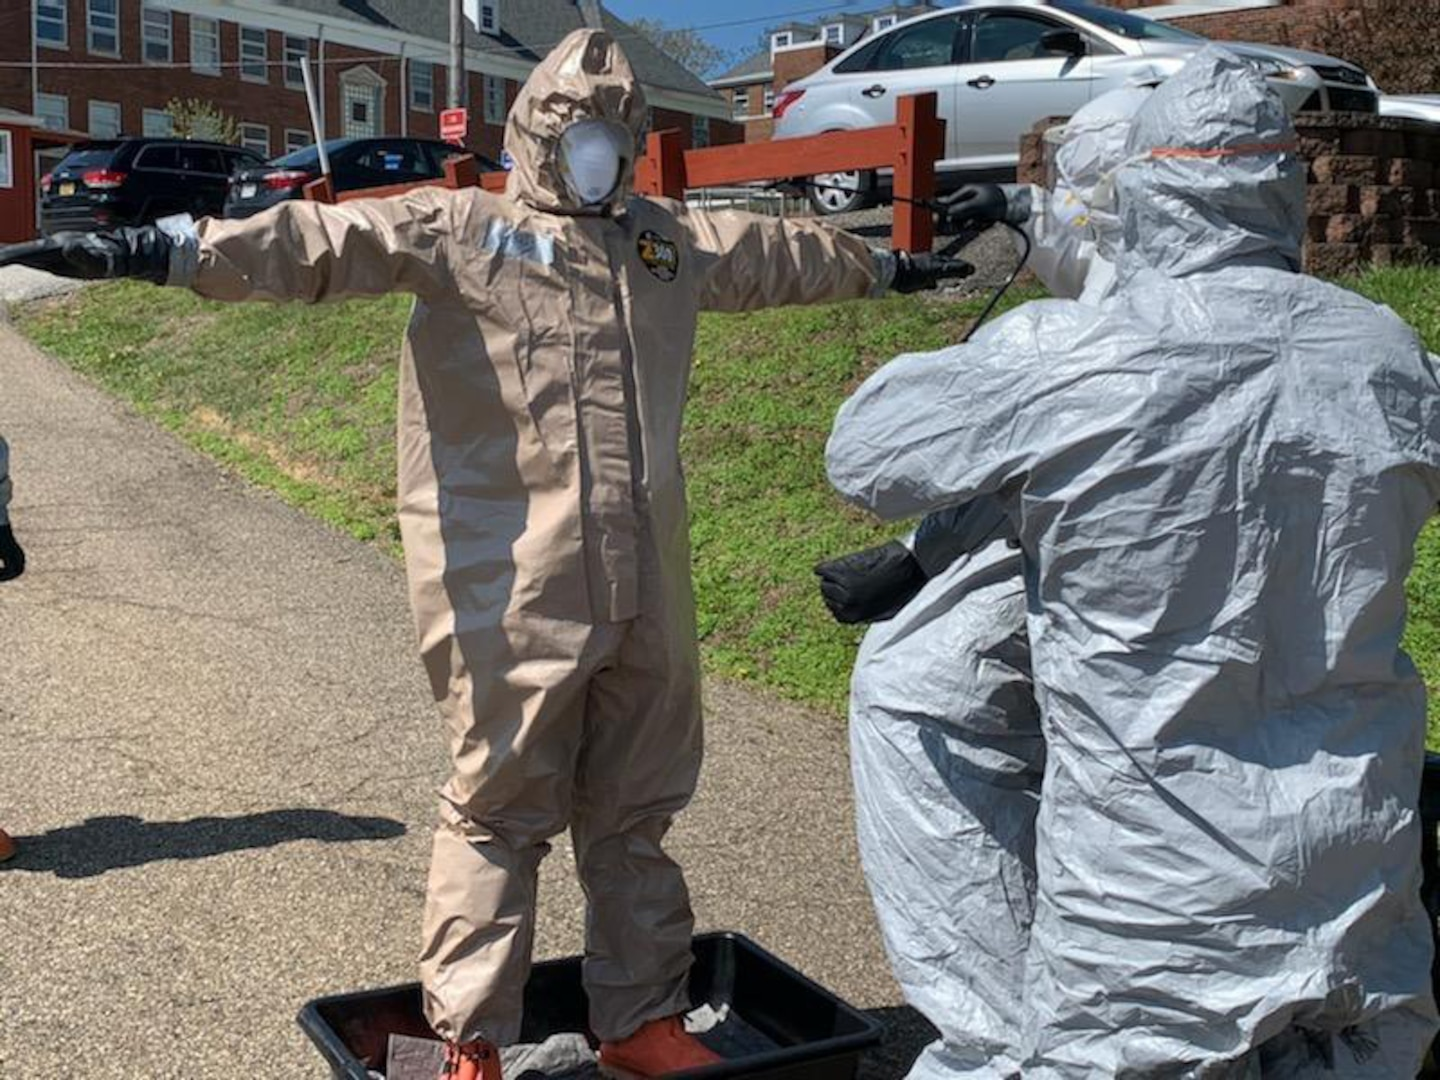 A member of the West Virginia National Guard Task Force CRE undergoes decontamination following COVID-19 testing at a veterans home facility April 20, 2020. The West Virginia National Guard tested more than 400 patients and staff at two veterans home facilities in Barboursville and Clarksburg.